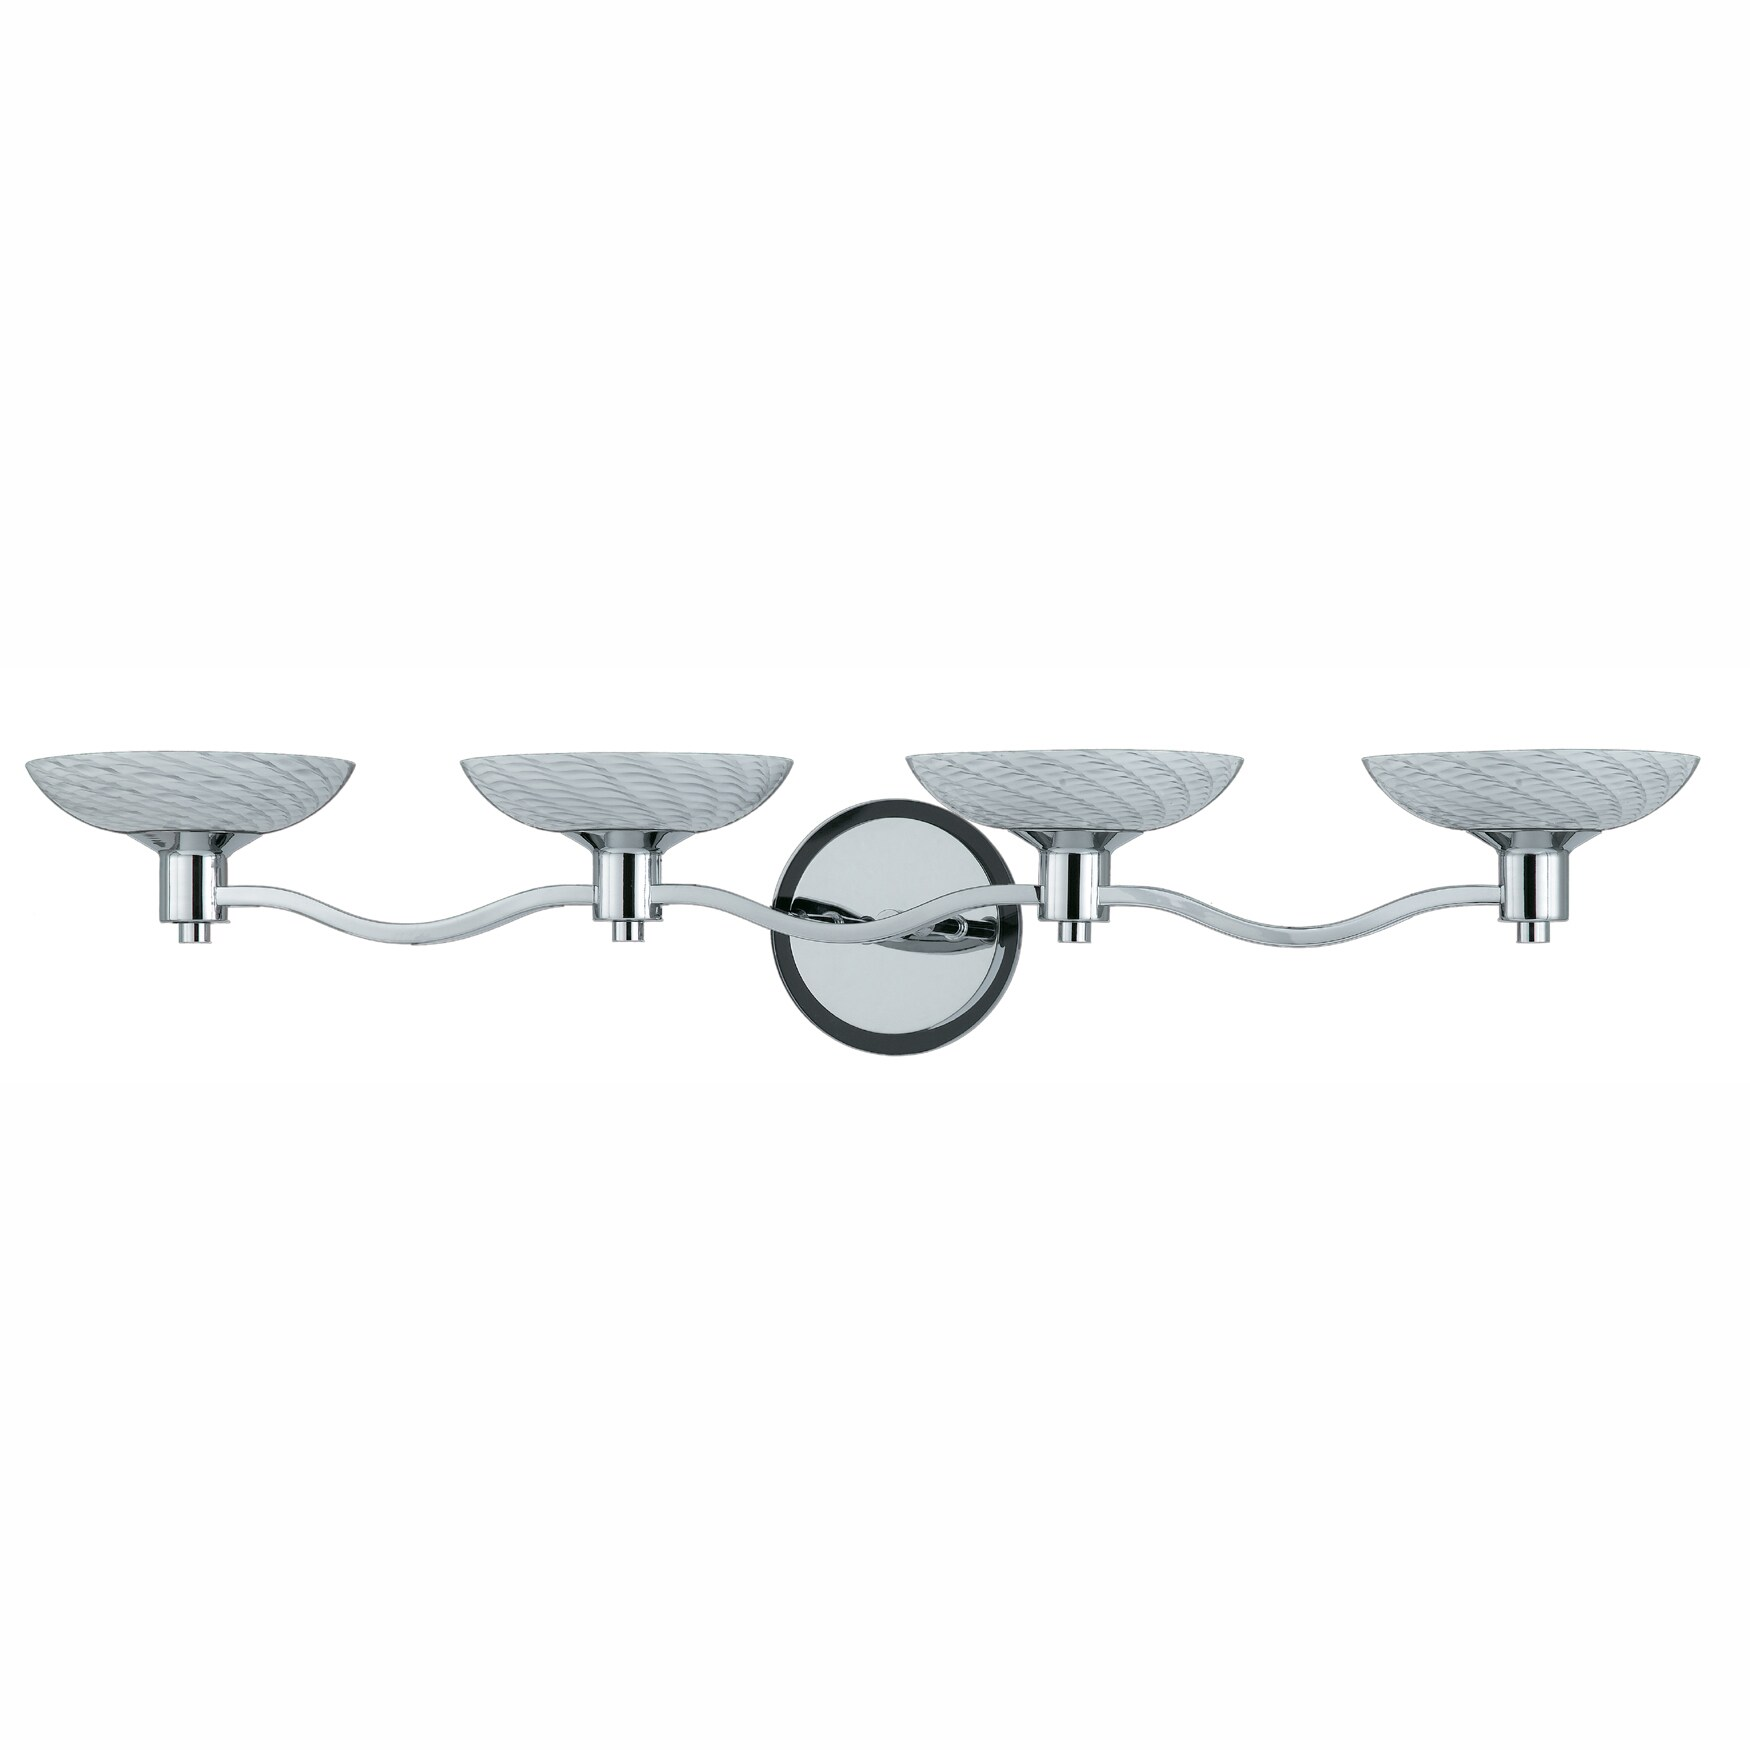 Contemporary 4-light Bath Vanity in Polished Chrome